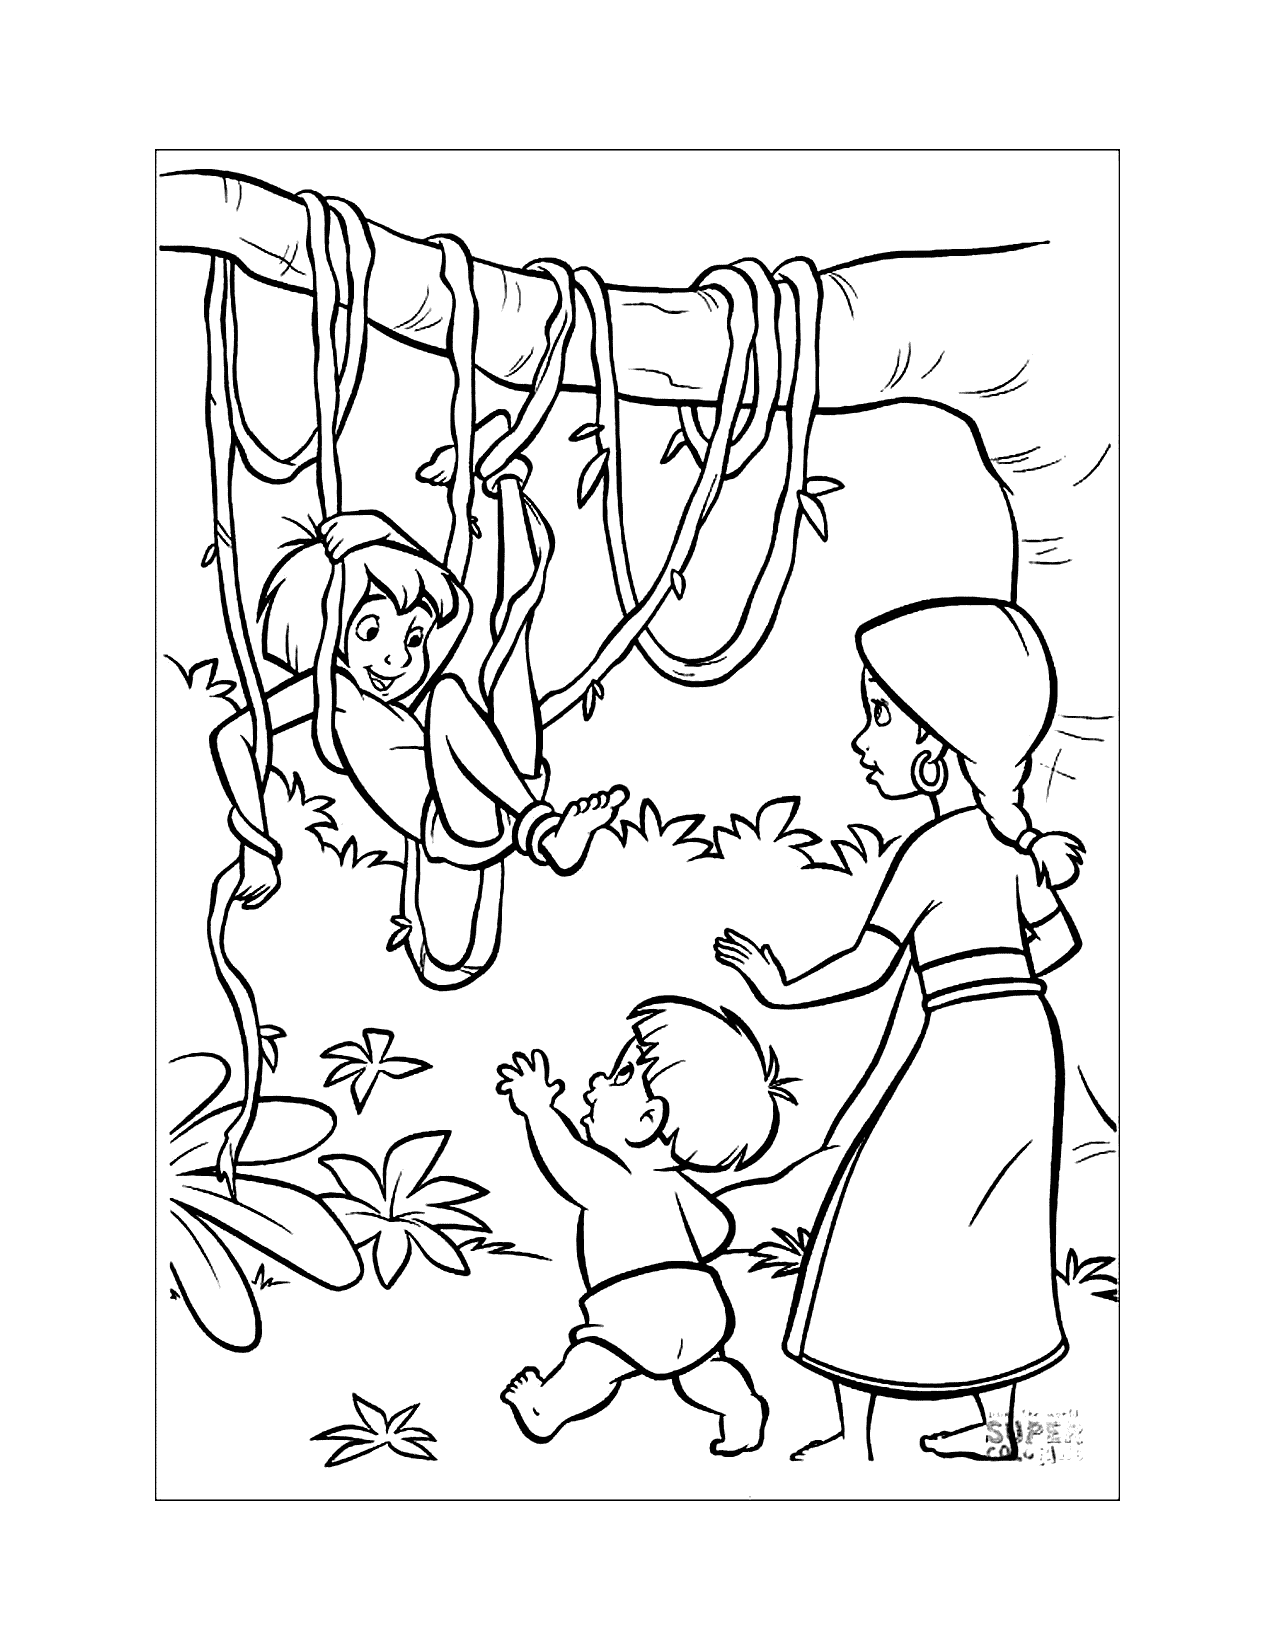 Mowgli Gets Caught Up Coloring Page